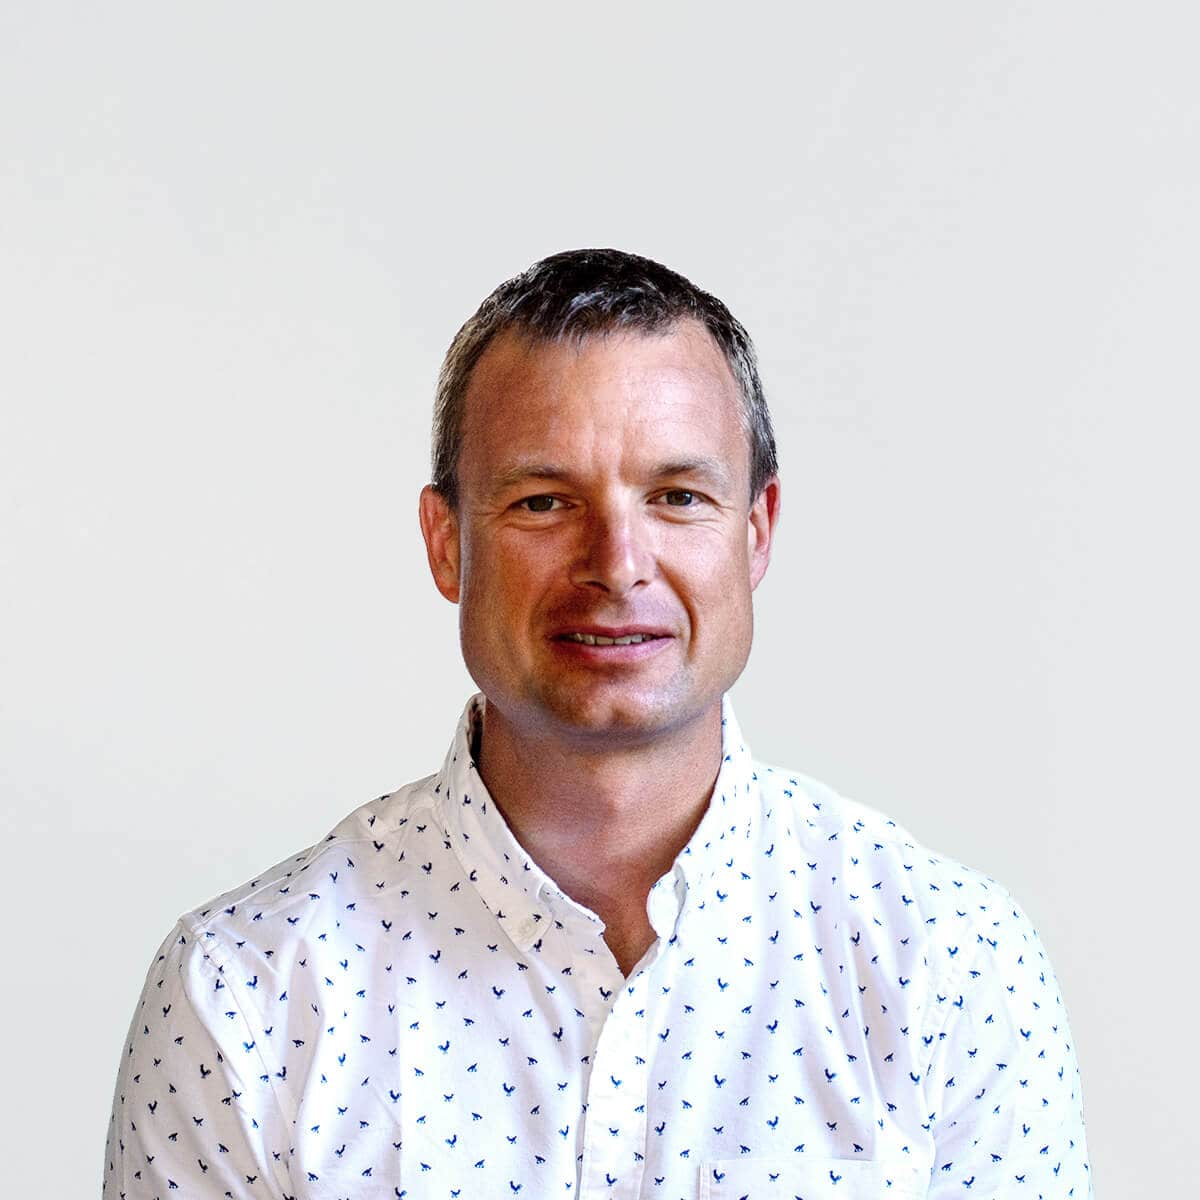 Photo of Shawn Hill from NiceJob